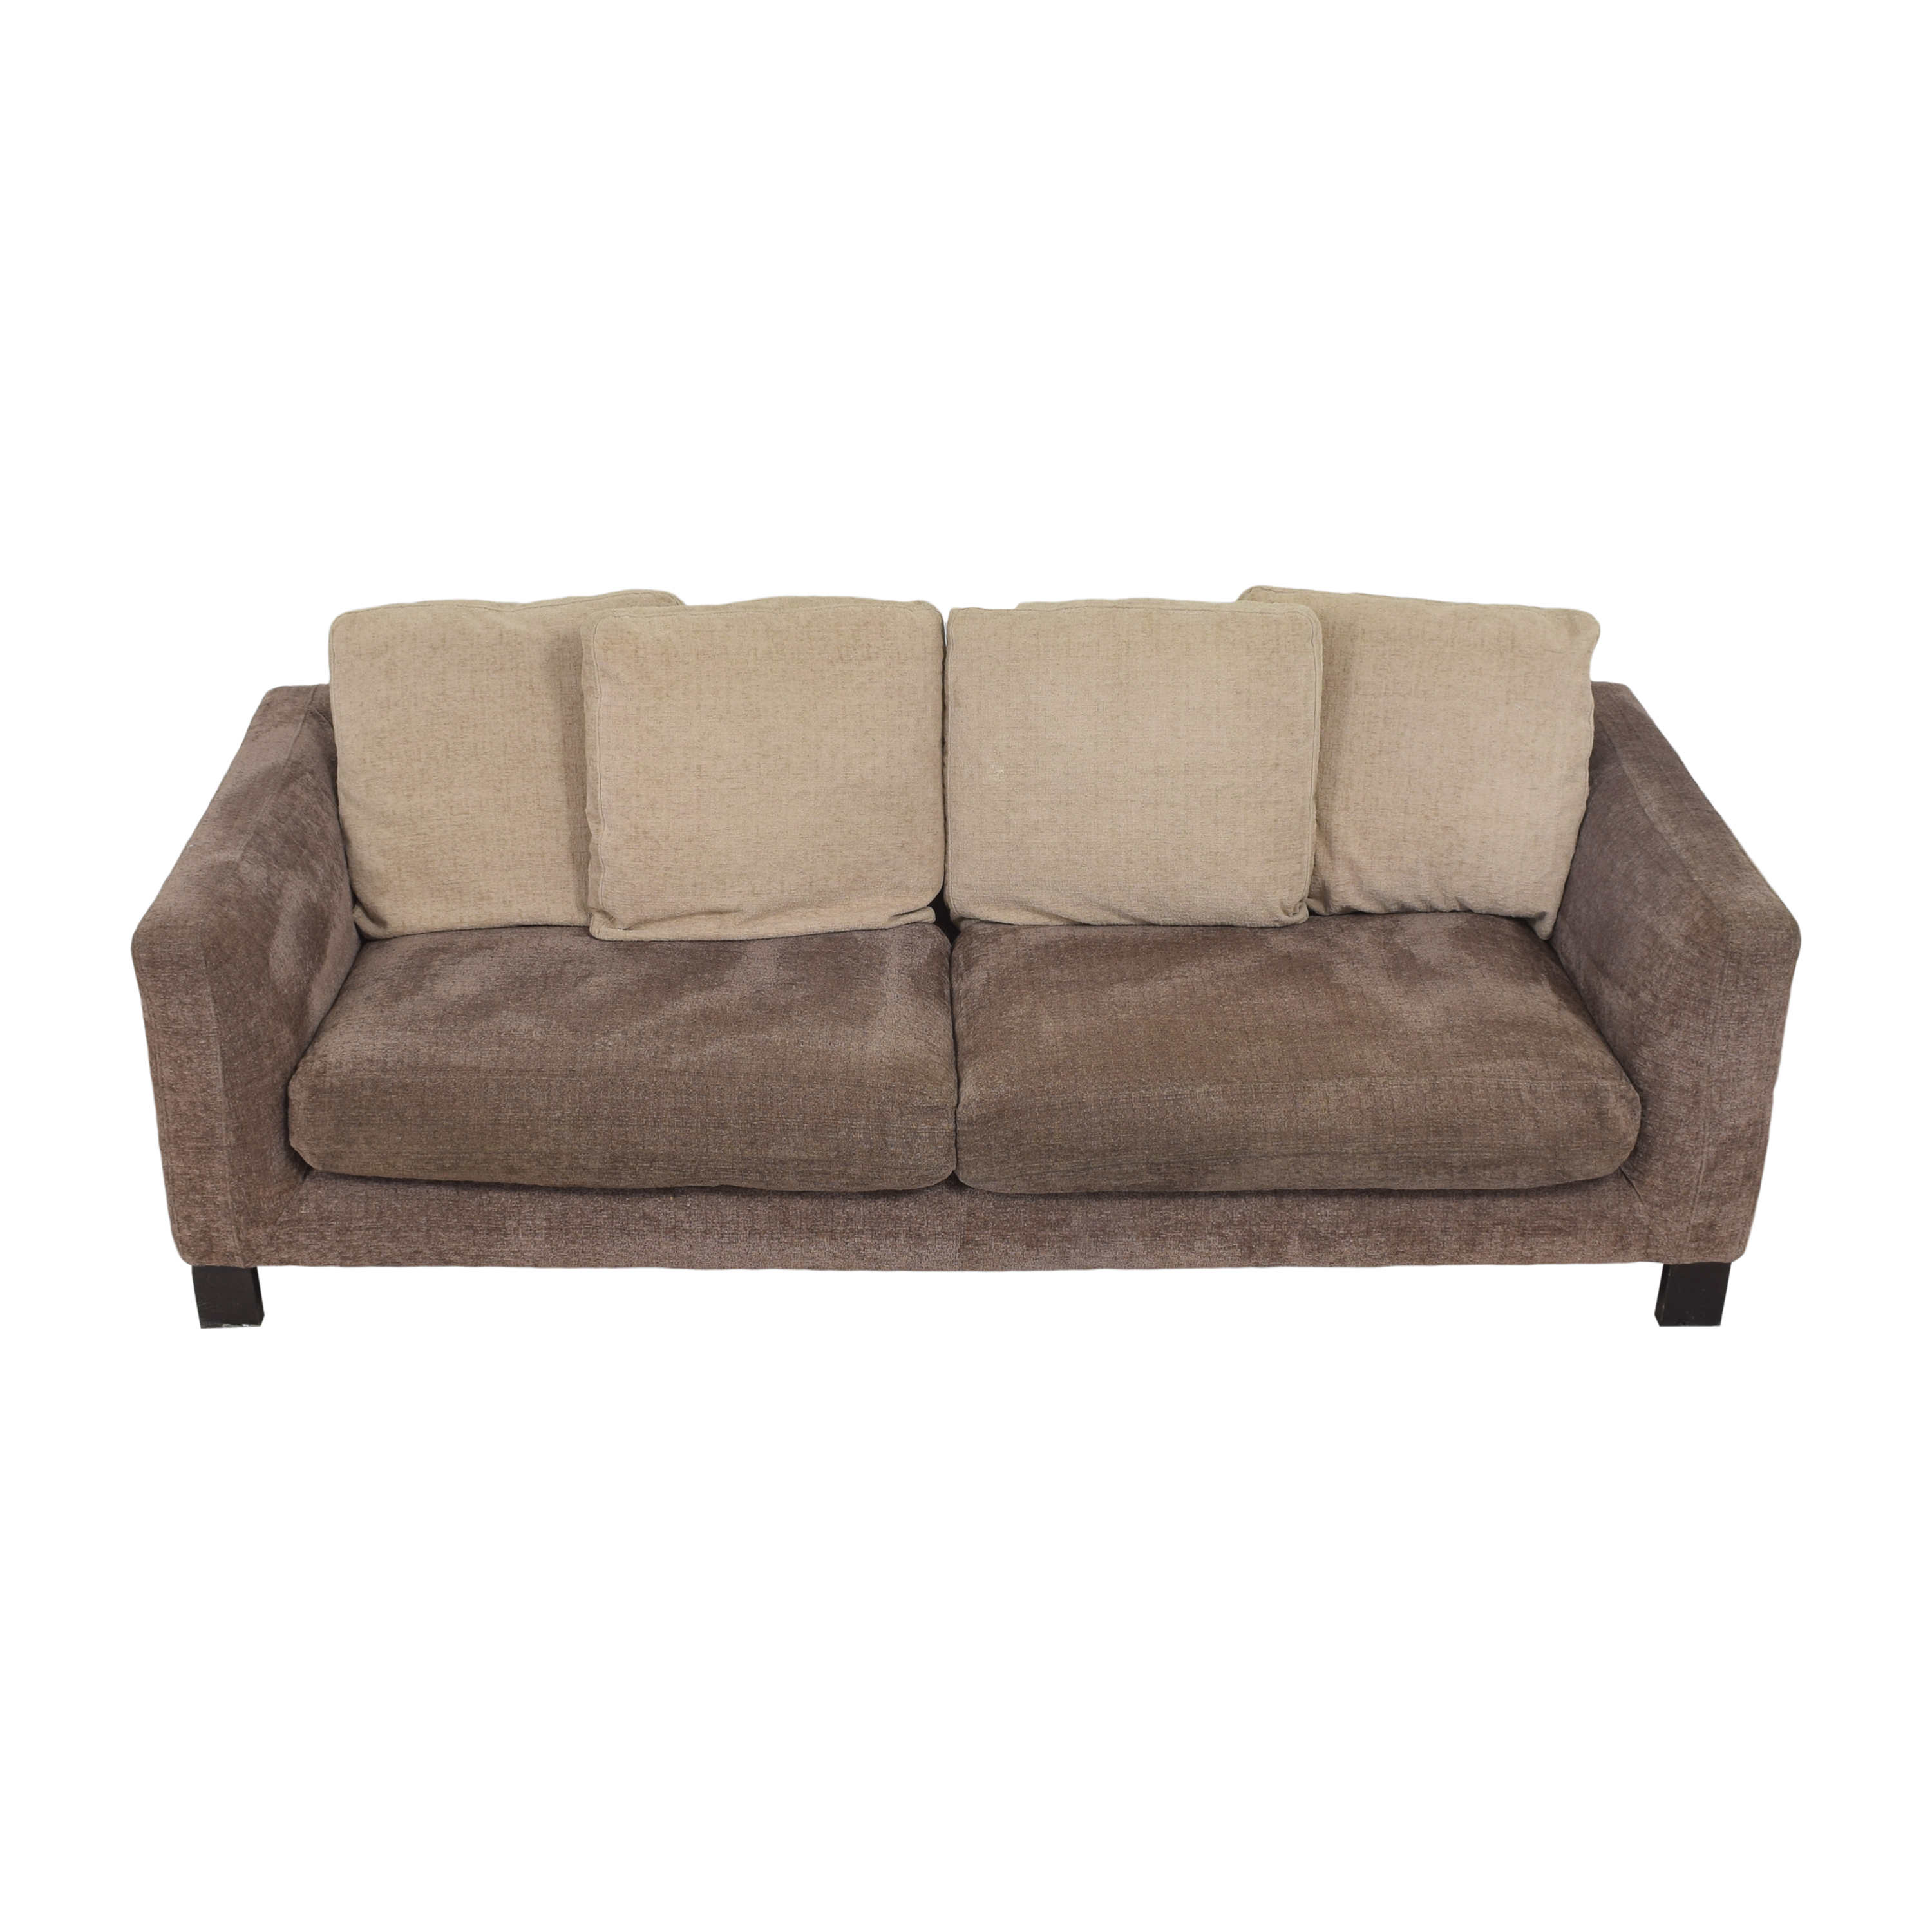 Maurice Villency Maurice Villency Two Tone Sofa for sale